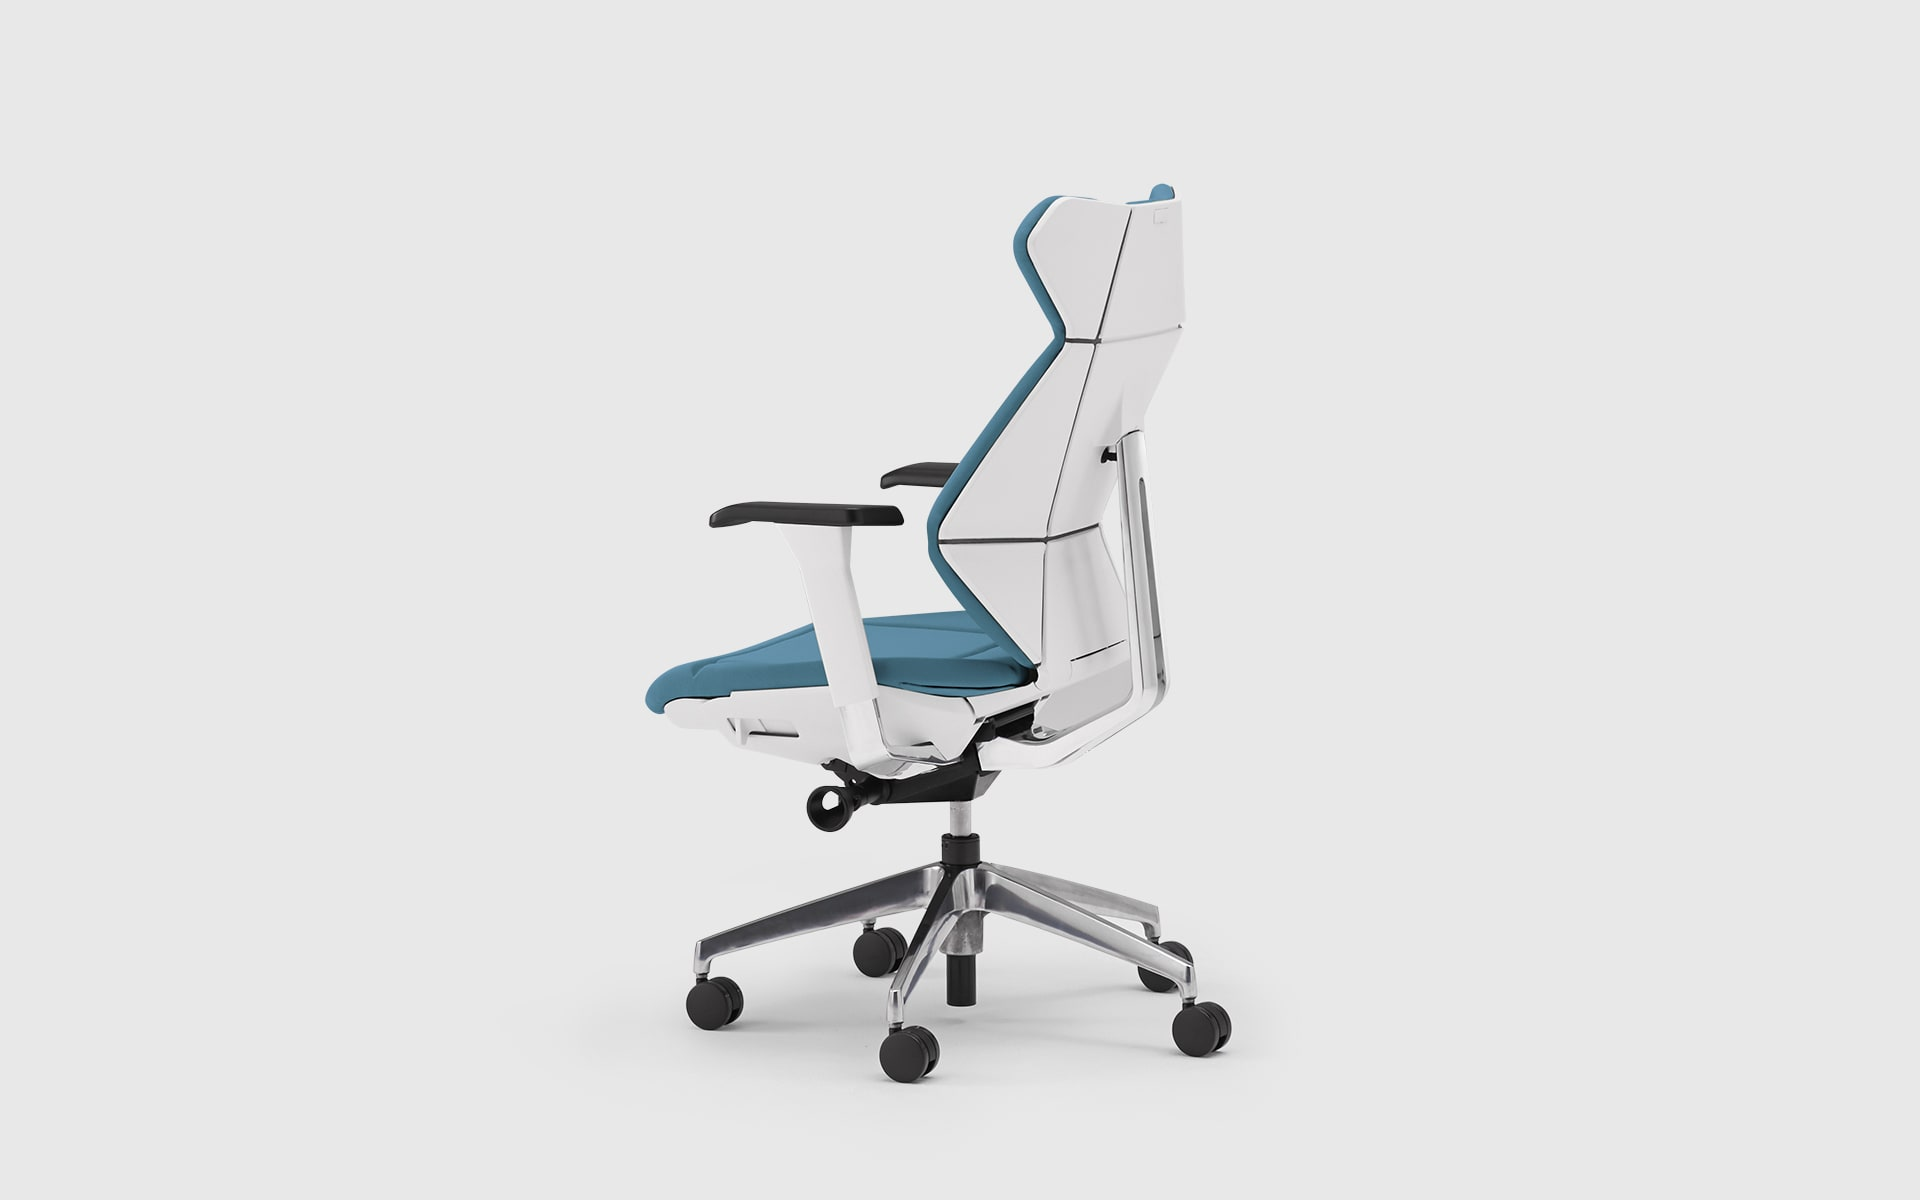 ITOKI FF office chair by ITO Design with origami look, white backrest and blue upholstery